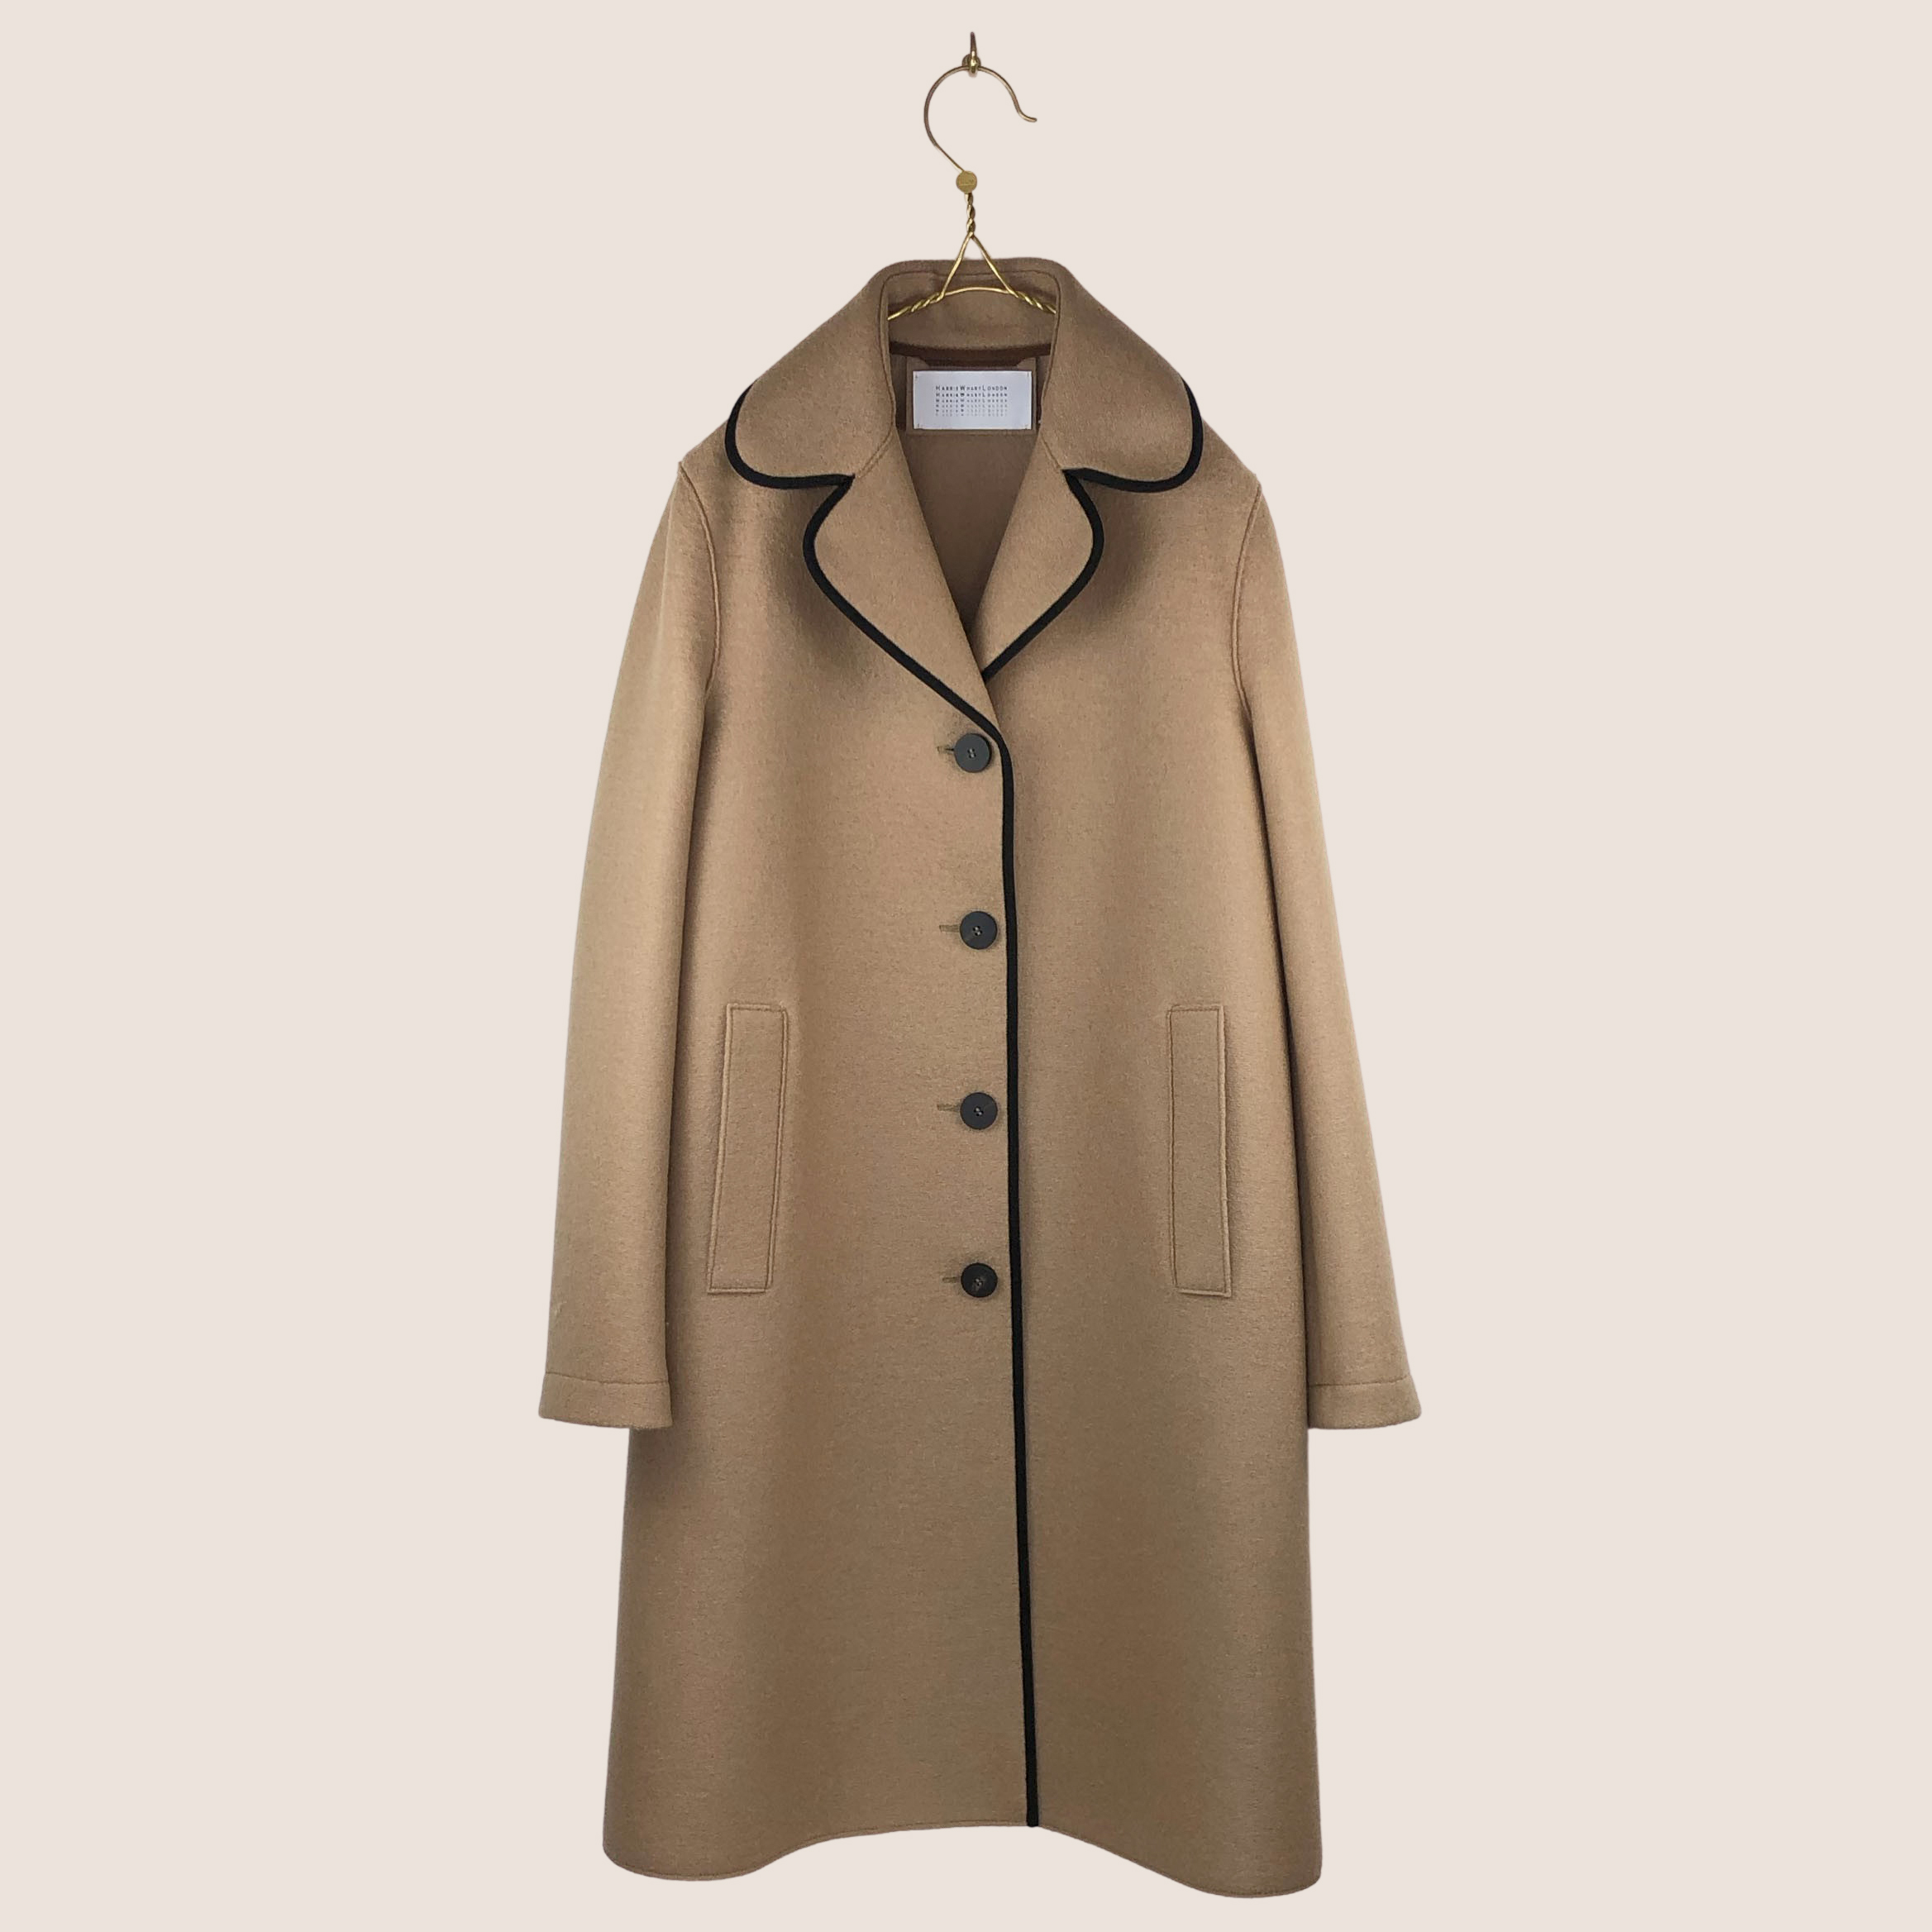 Contrast Piped Coat